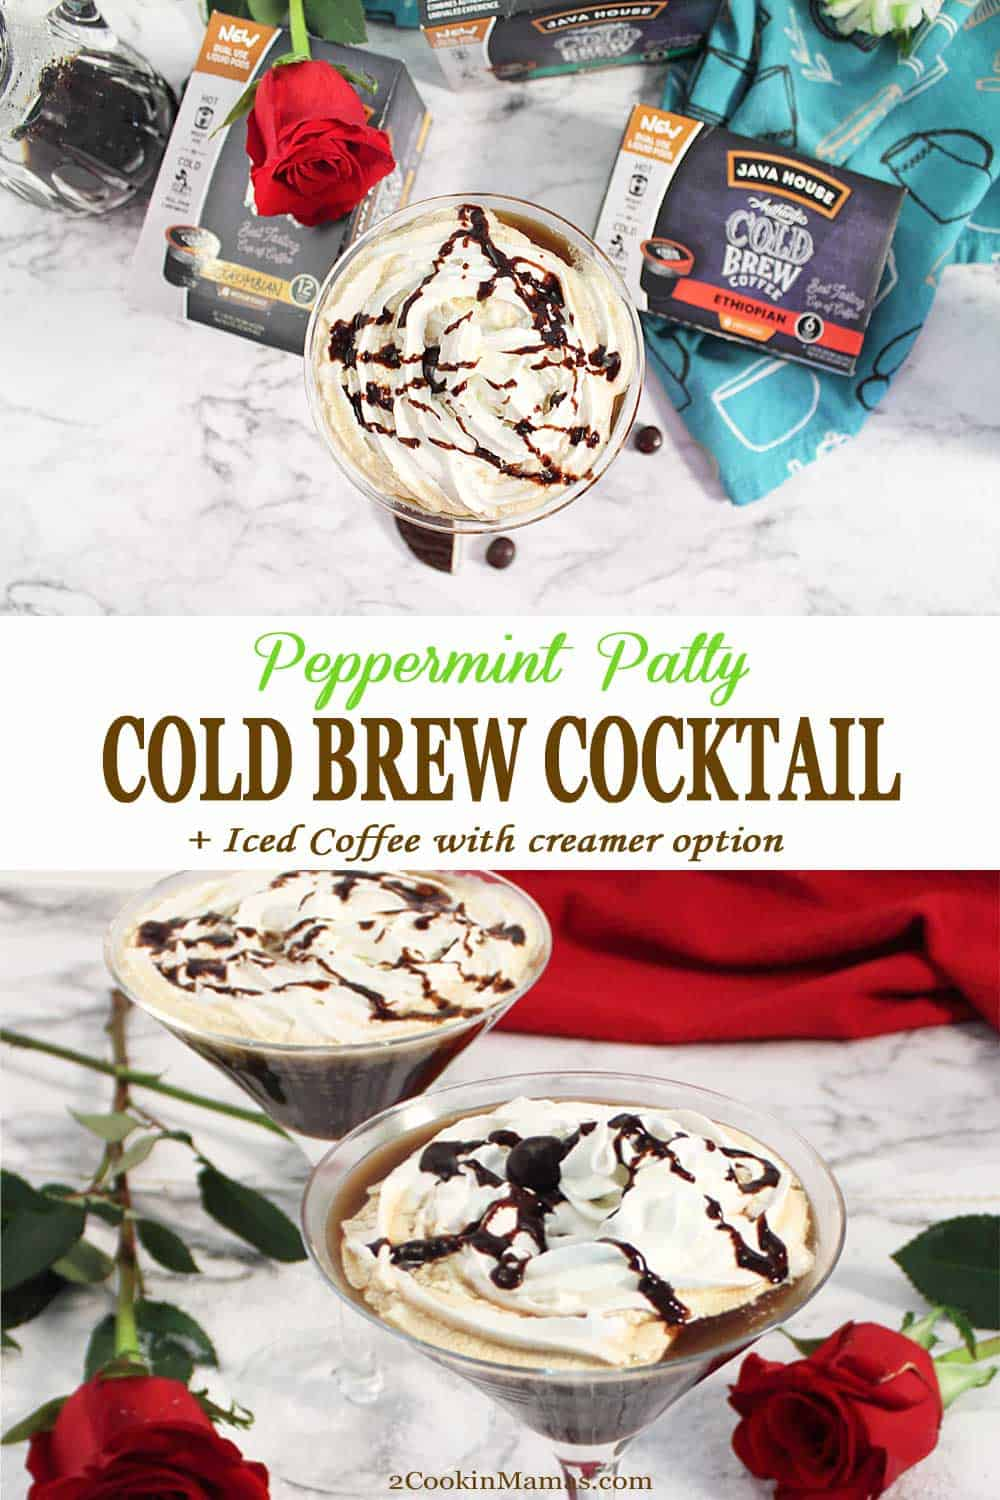 Peppermint Patty Cold Brew Cocktail 2 | 2 Cookin Mamas Peppermint Patty Cold Brew Coffee Cocktail is a warm coffee cocktail with all the flavor of your favorite peppermint patty candy. It's the perfect drink to take the chill off on a cold winter's day and when summer rolls around, make it with this iced cold brew option and a splash of homemade peppermint patty creamer. #sponsored #cocktail #coffee #drink #javahousecoldbrew, #javahousecoffee, #coldbrewcoffee #warmuptocoldbrew #peppermint #chocolate #recipe #peppermintpatty @javahousecoldbrew